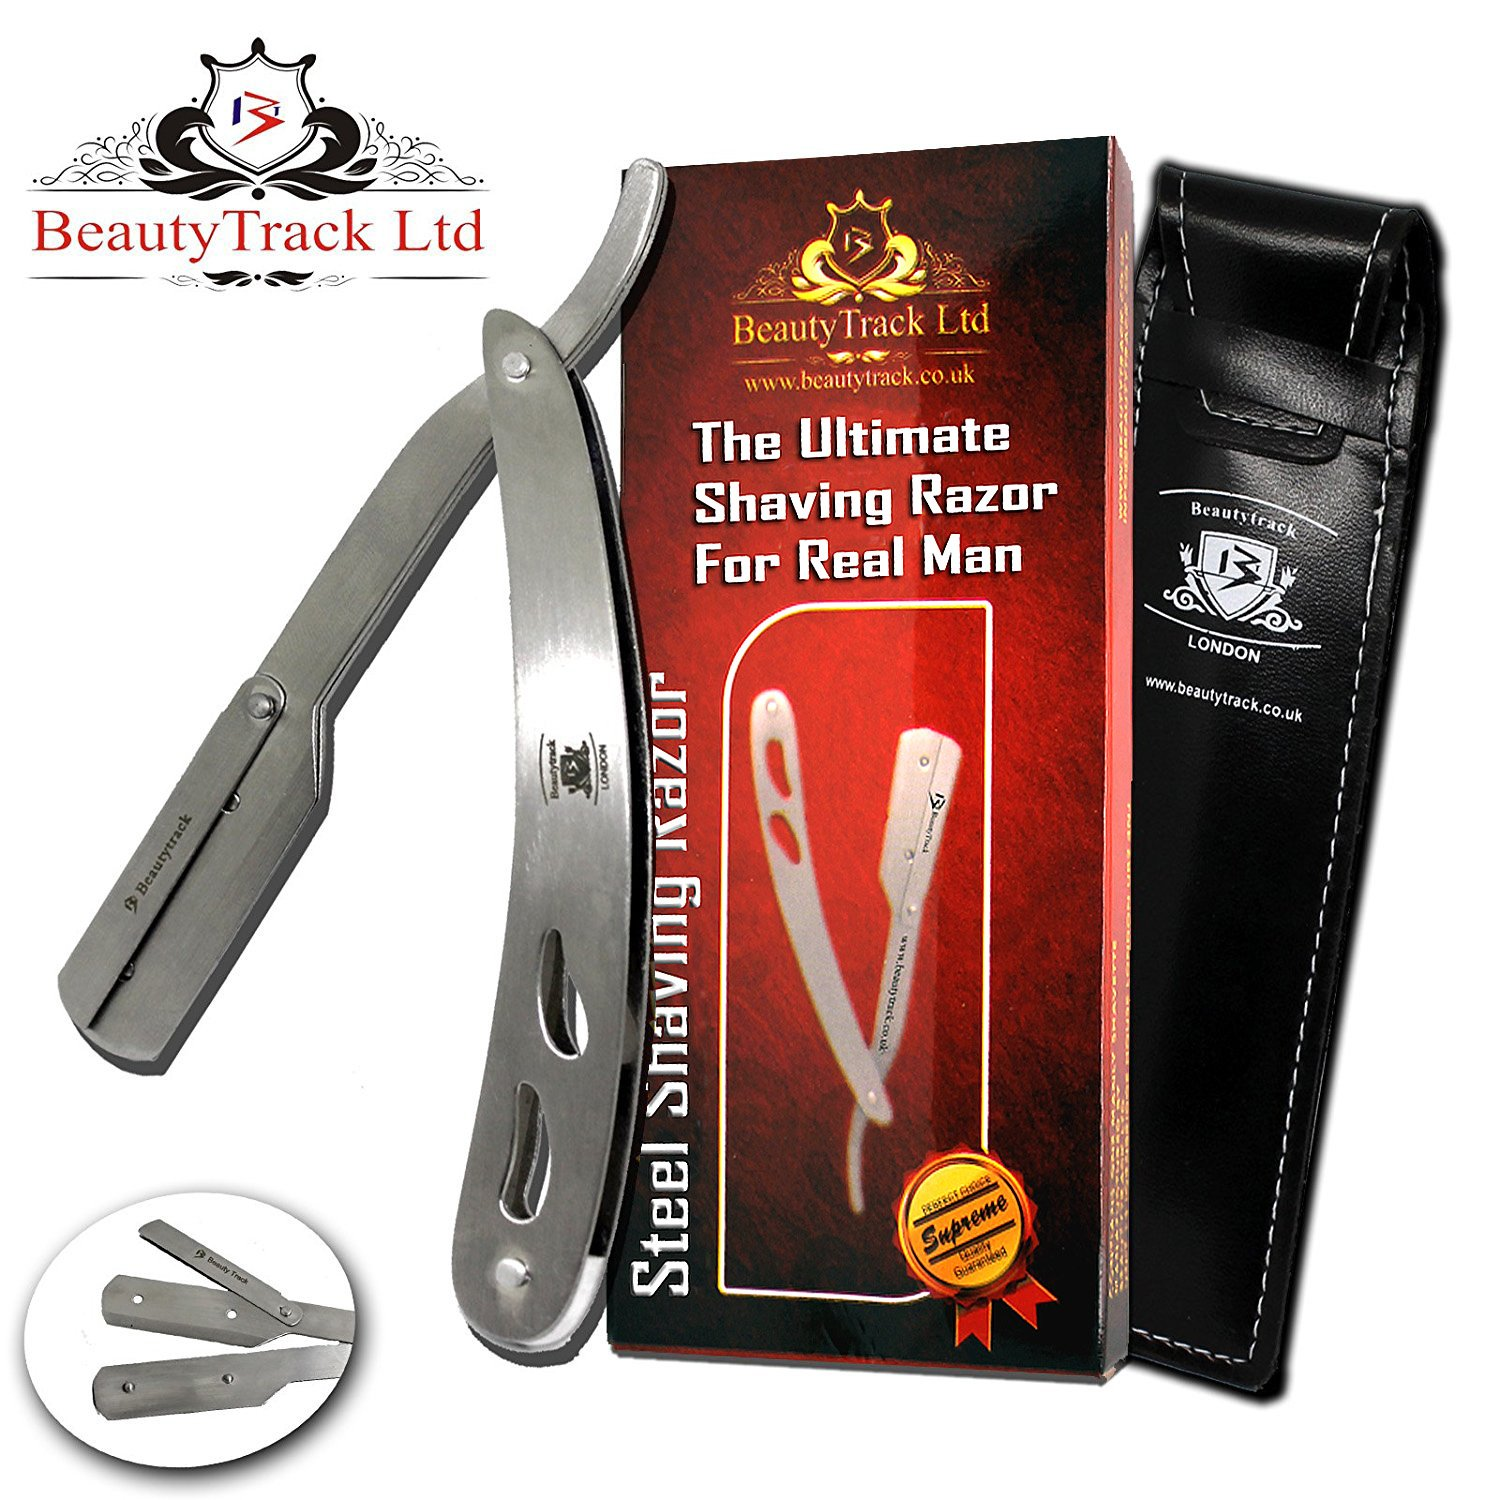 GiftSet Steel Handle Straight Wet Shaving Cut throat Razor - Barber Razor - New Improved Quality - Extra Long Stylish Handle Razor - Salon Razor - Safety Razor - Gift Box + Storage case BeautyTrack